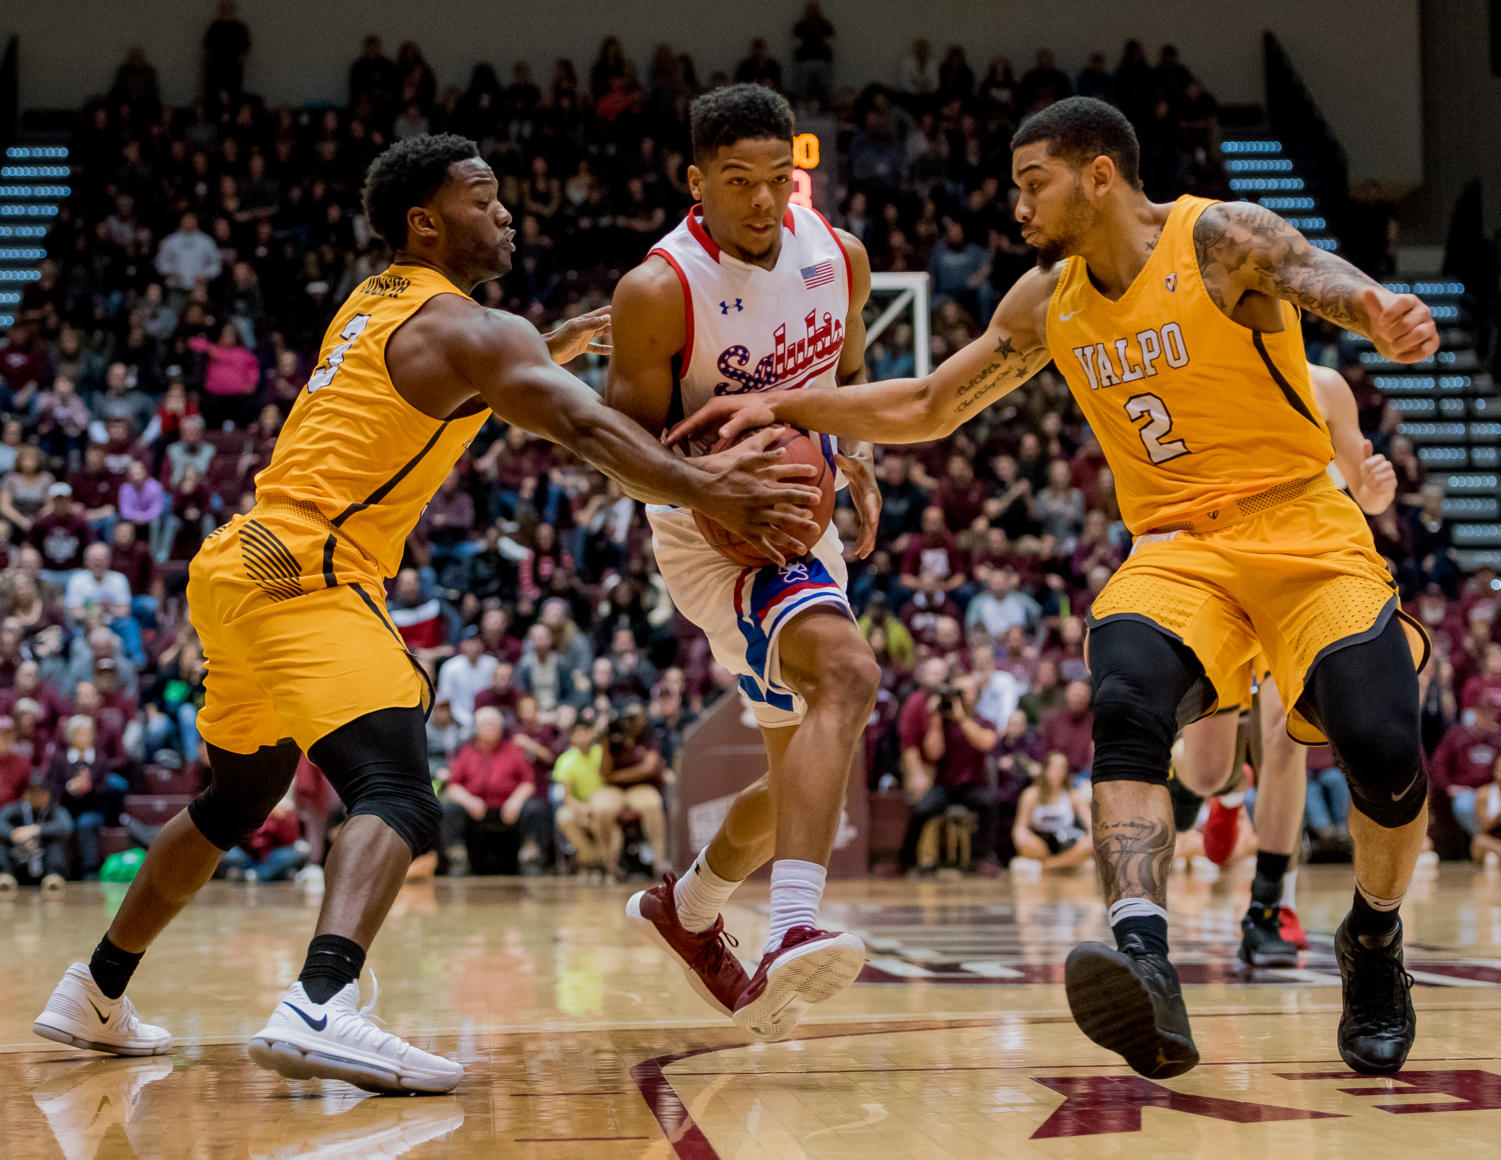 Sophomore guard Aaron Cook attempts to get past Valparaiso guard Max Joseph, far left, and Valparaiso guard Tevonn Walker Saturday, Feb. 3, 2018, during the Salukis' 65 - 59 win against the Valparaiso Crusaders at SIU Arena. (Brian Munoz | @BrianMMunoz)